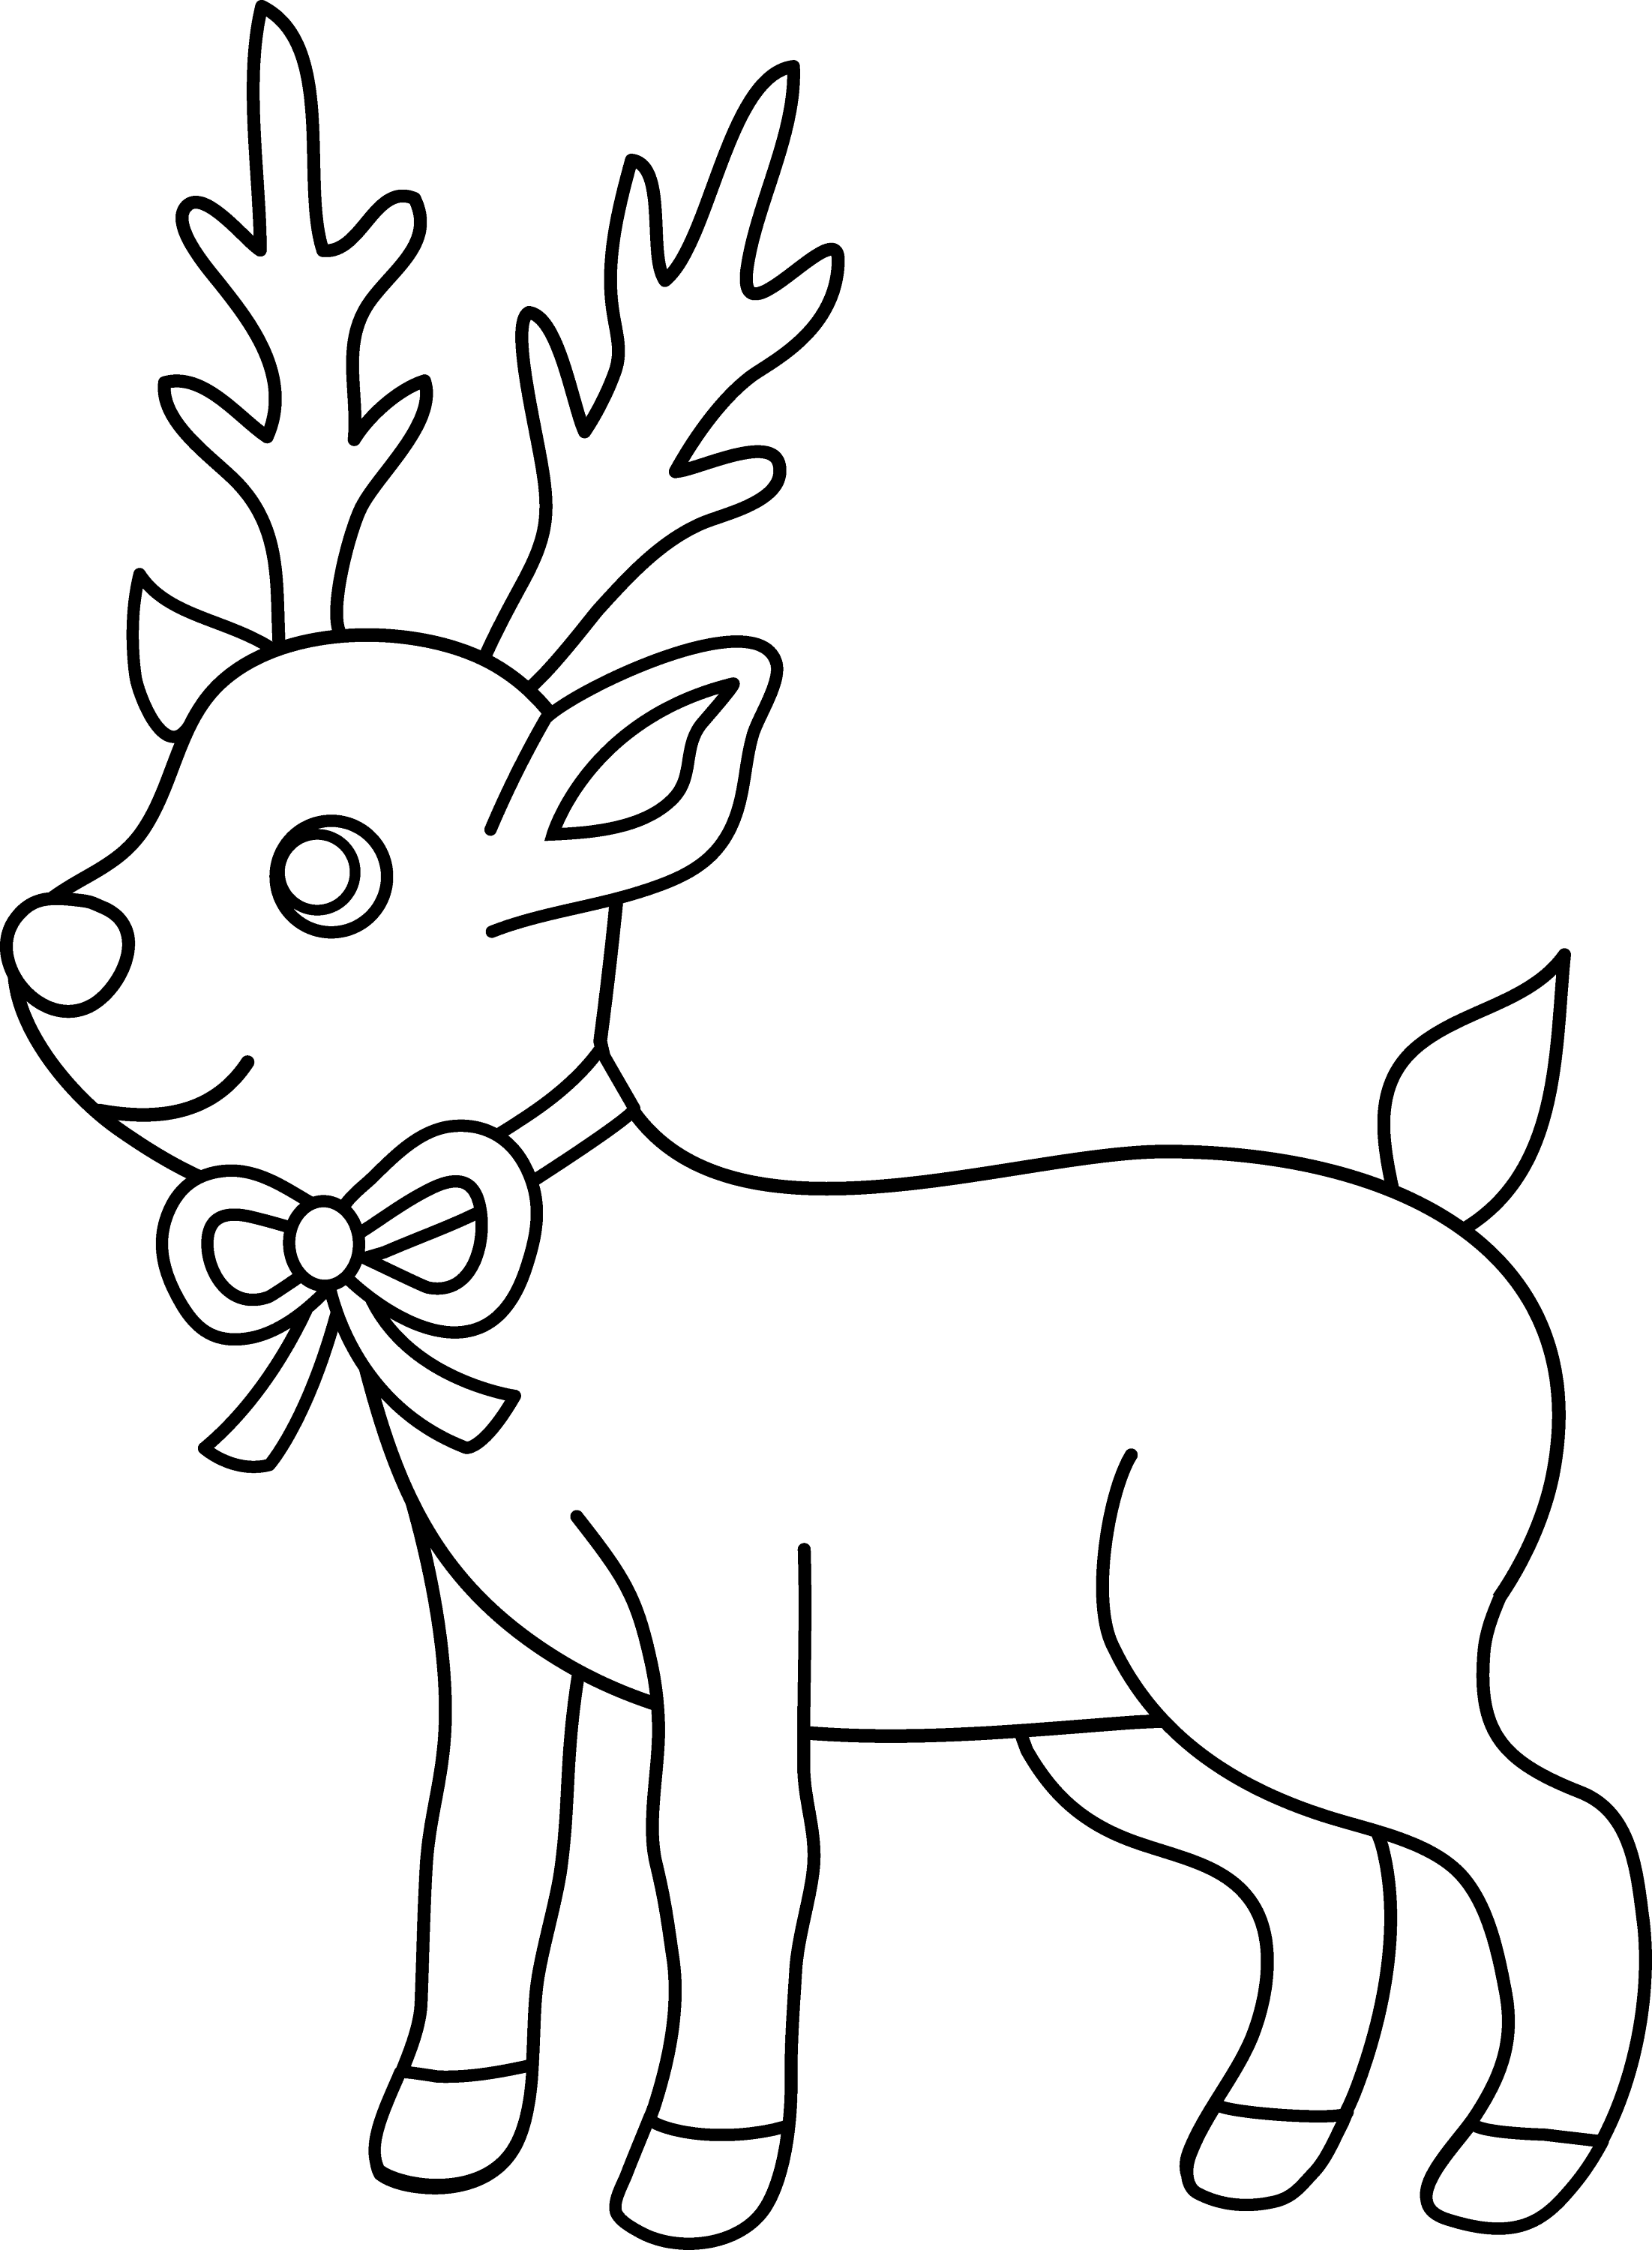 Christmas Reindeer Coloring Page